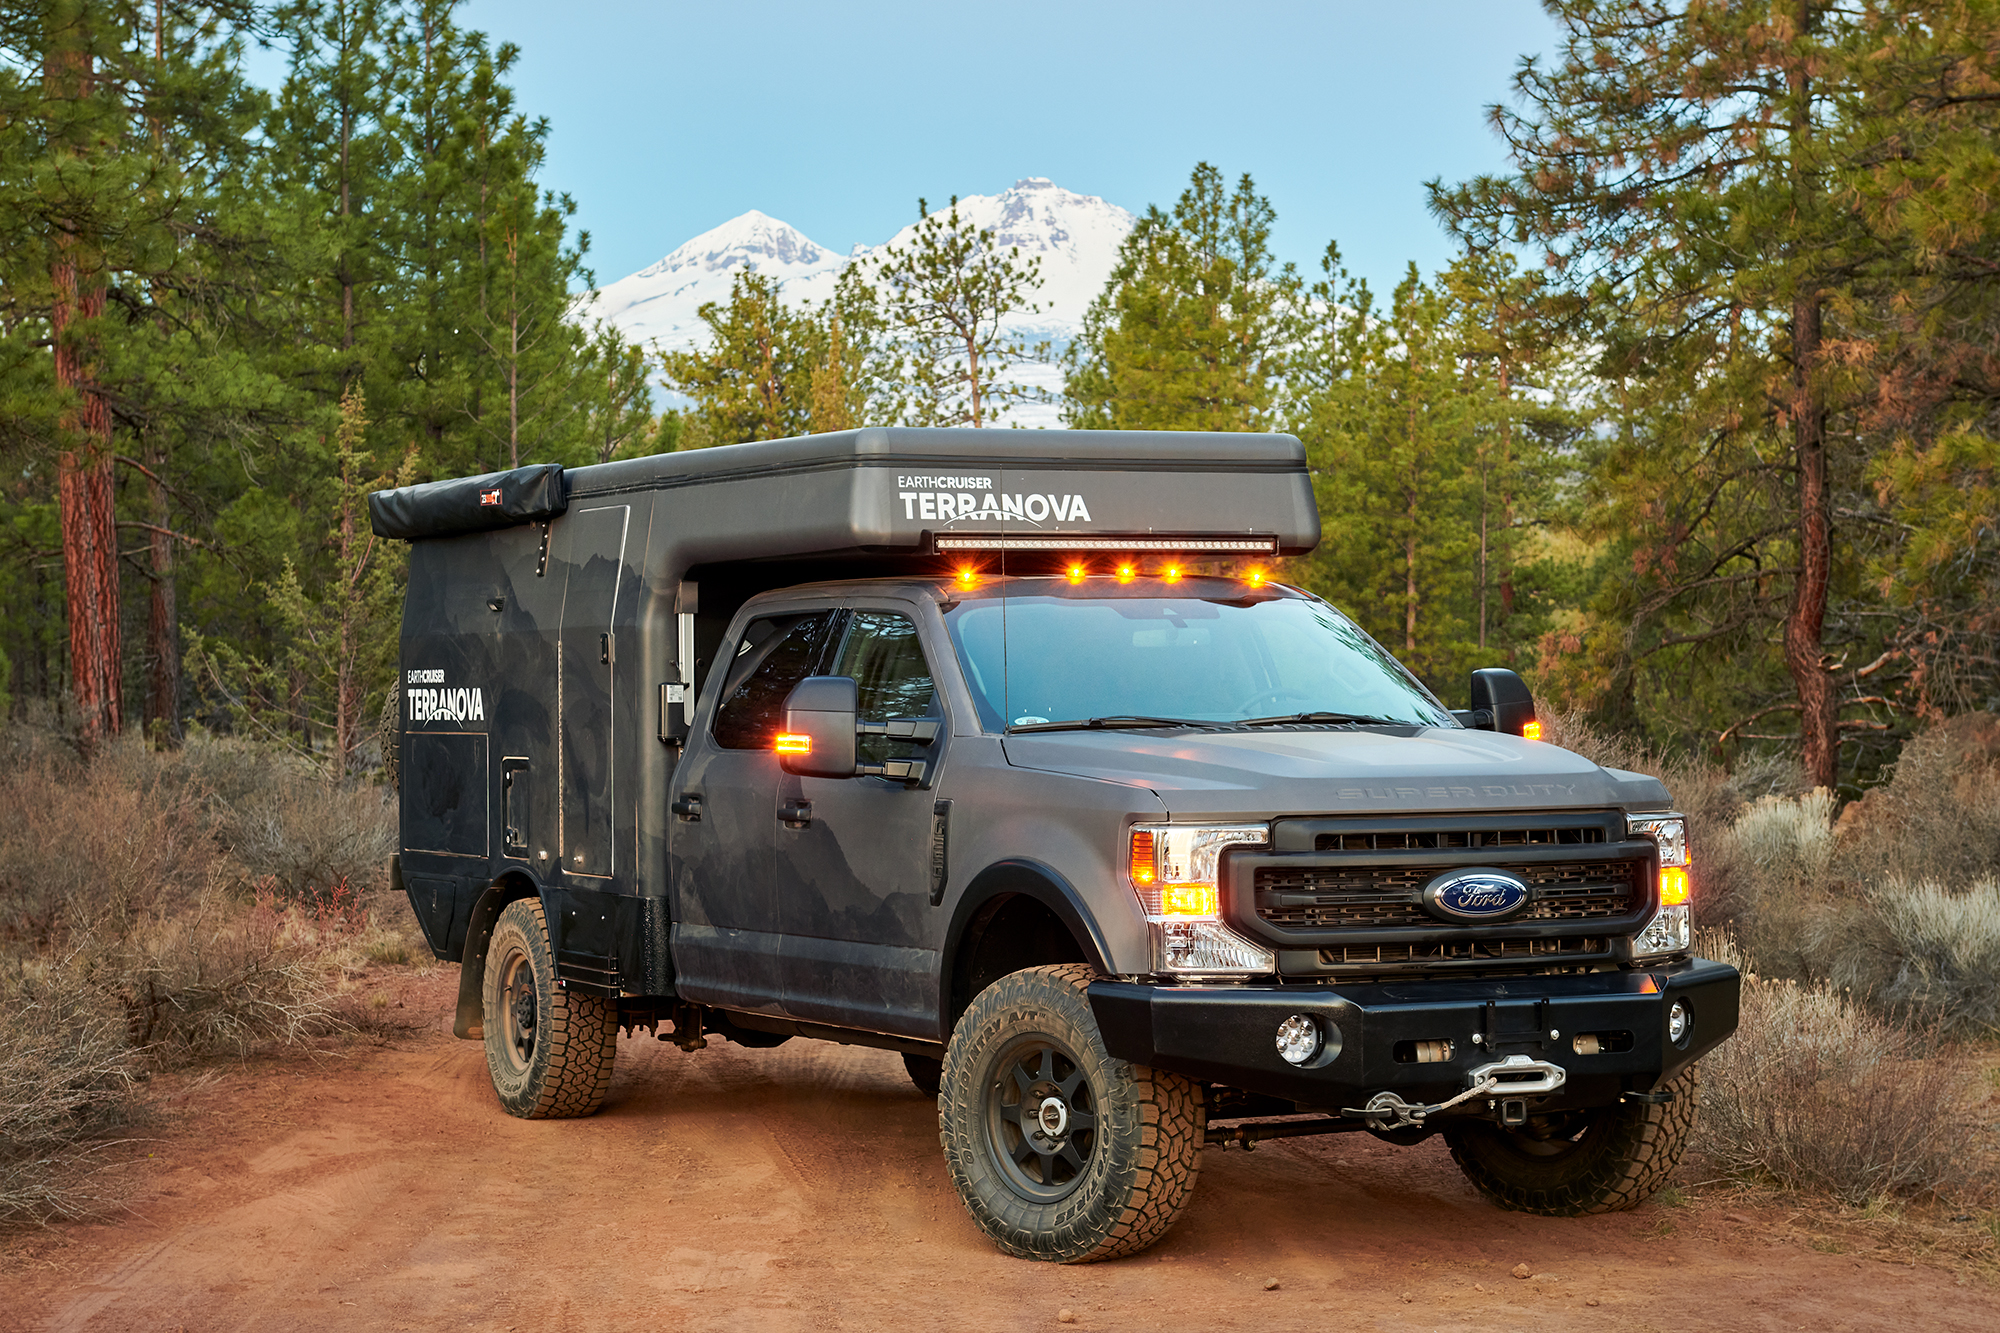 EarthCruiser turns the Ford F-350 into an all-season, all-terrain expedition motorhome